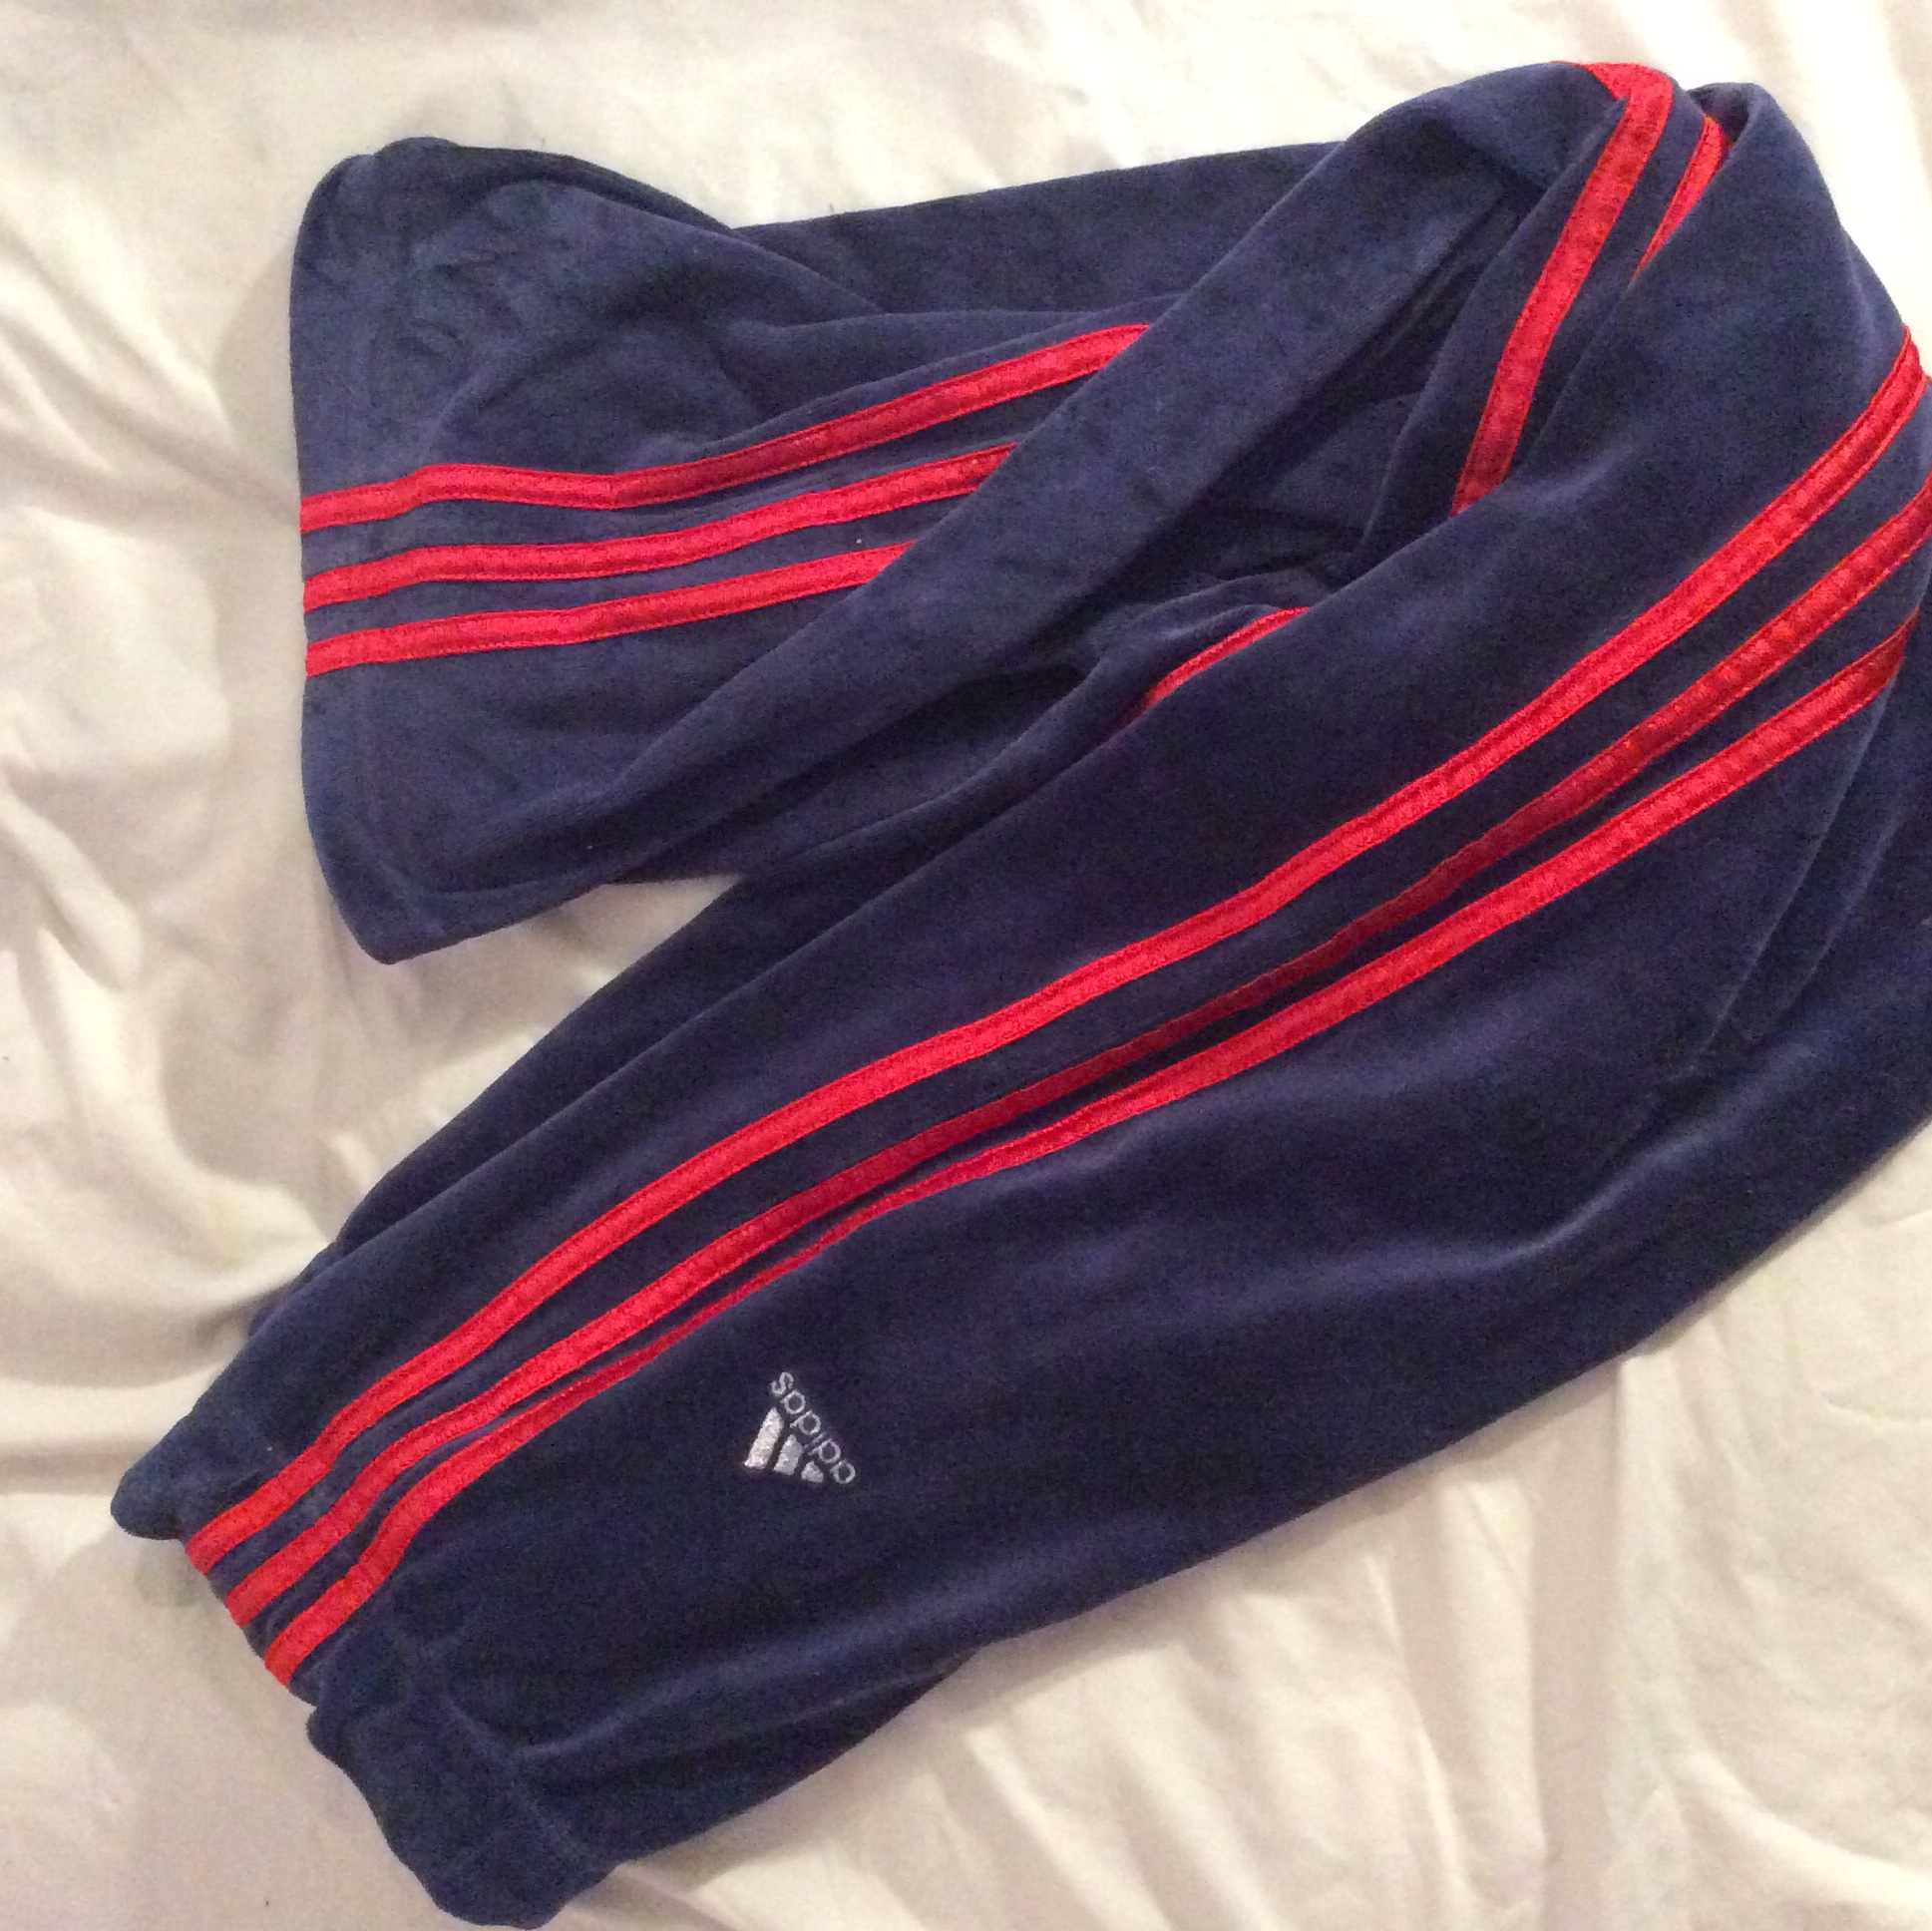 Navy blue and red striped Adidas Track pants Depop